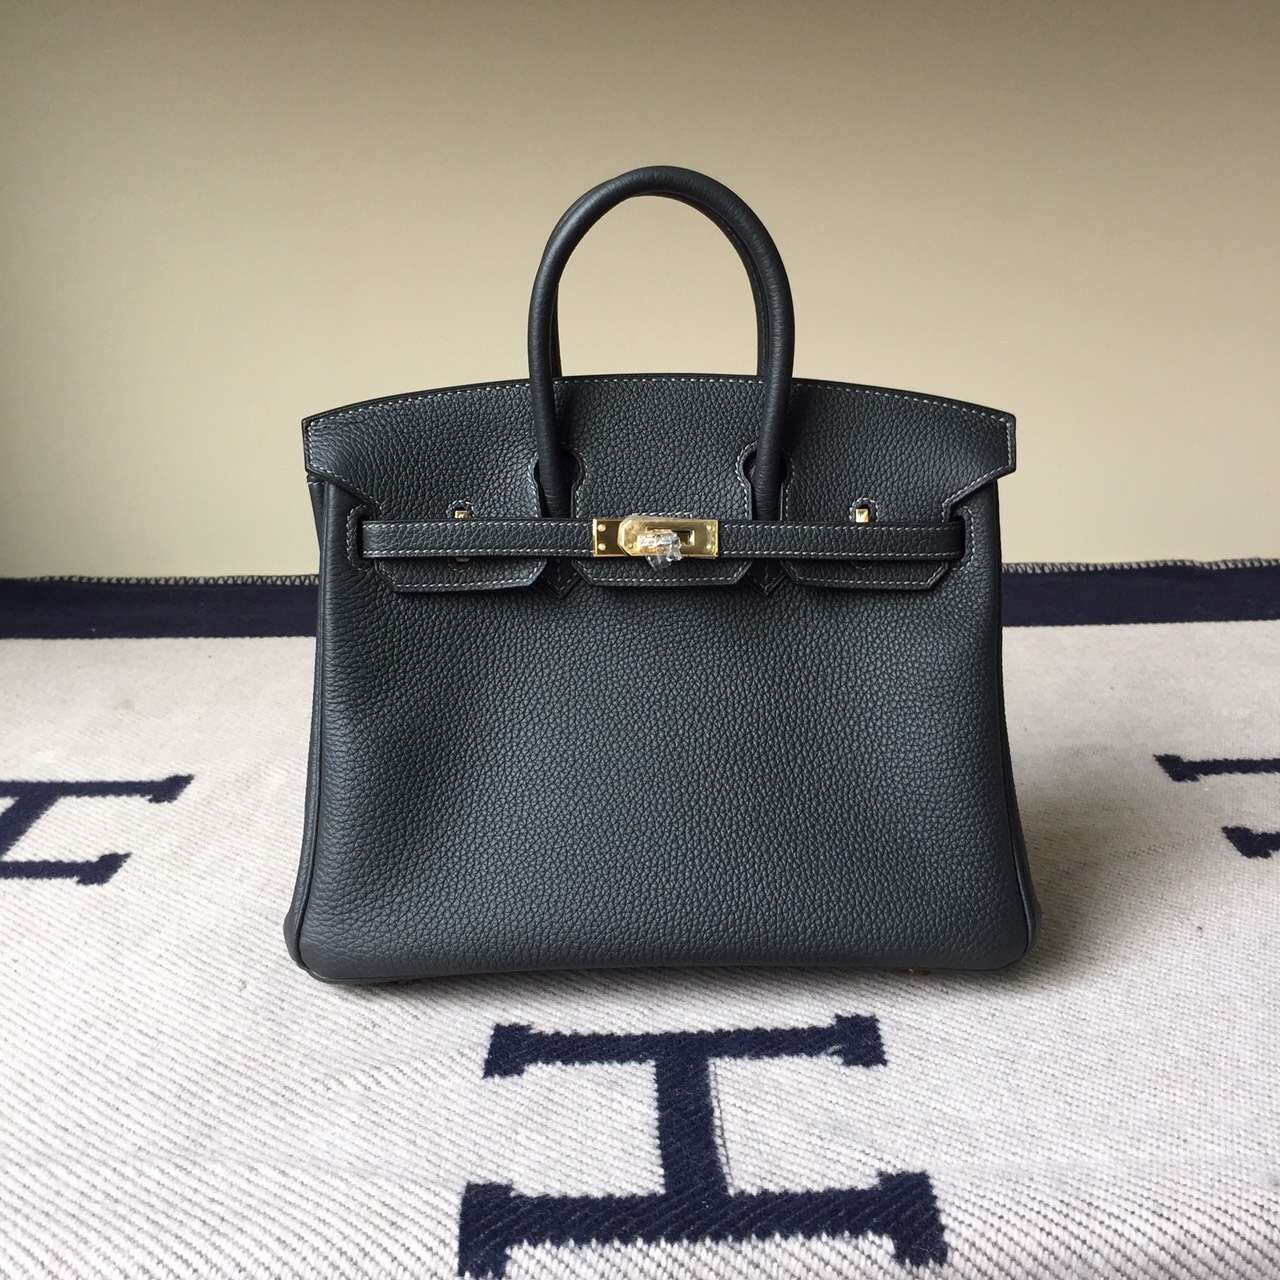 Wholesale Hermes Togo Leather Birkin25cm Bag in 33 Graphite Grey